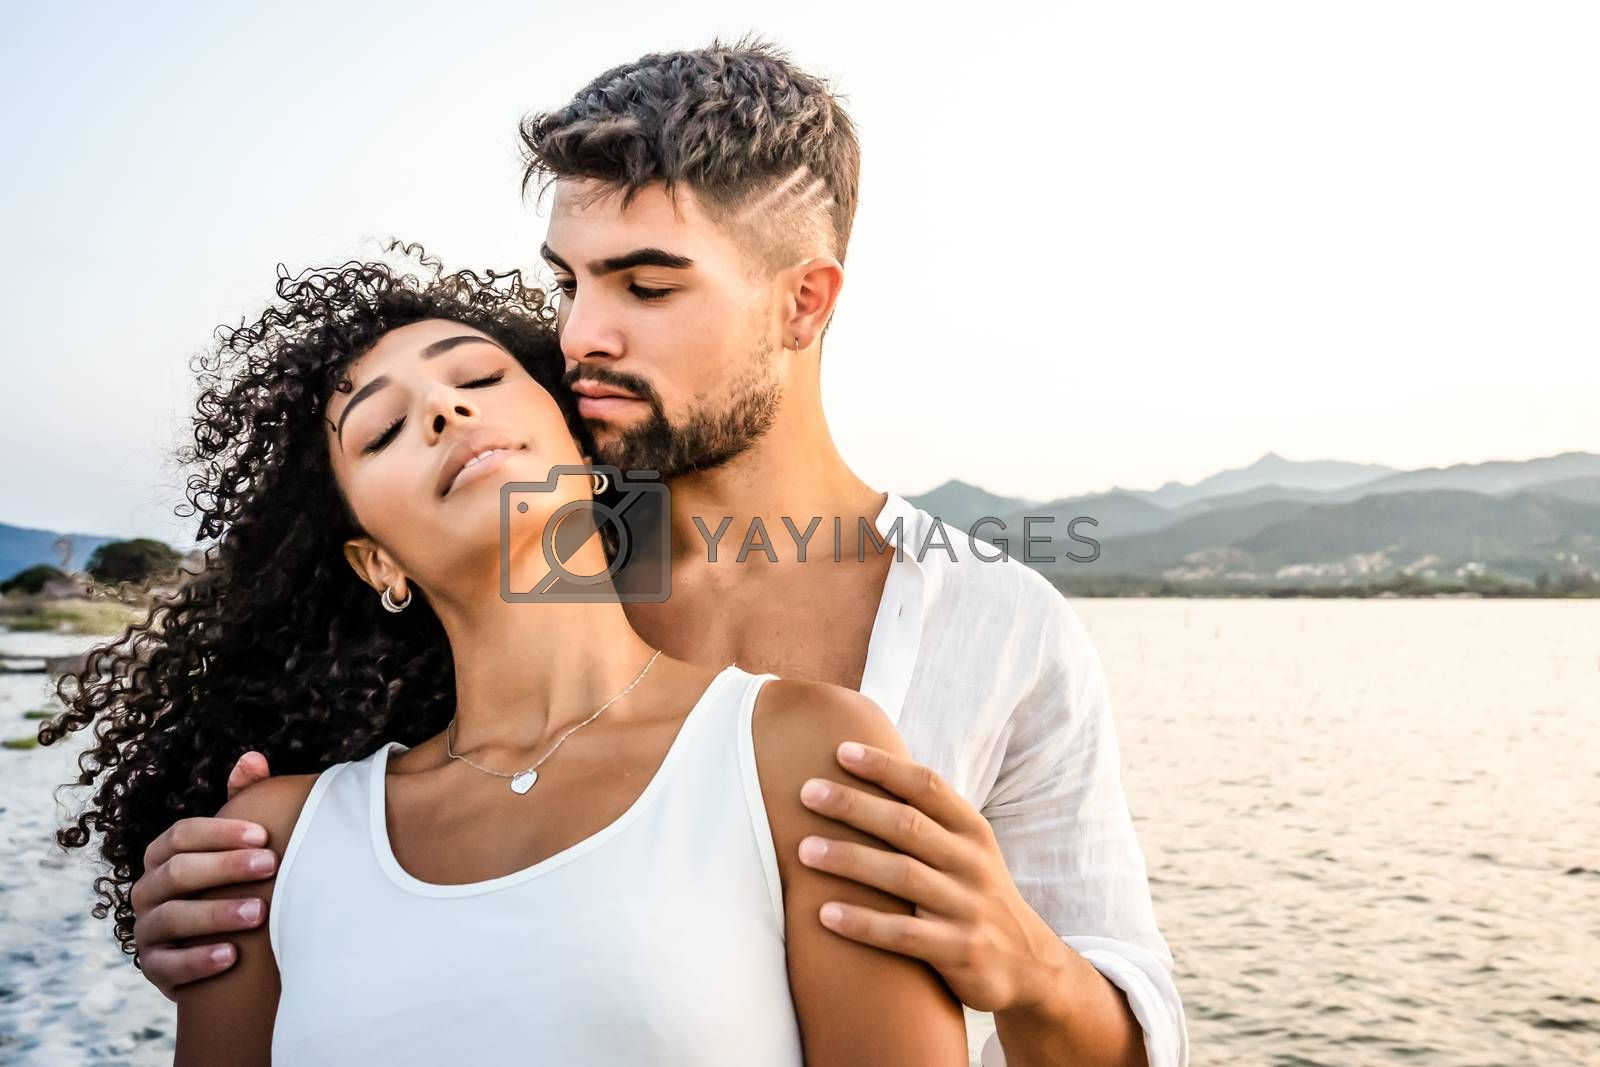 Royalty free image of Heterosexual mixed race couple in romance scene at sunset with vintage photo effect filter - Handsome Caucasian guy embracing from back his Hispanic girlfriend with closed eyes - Focus on curly hair by robbyfontanesi